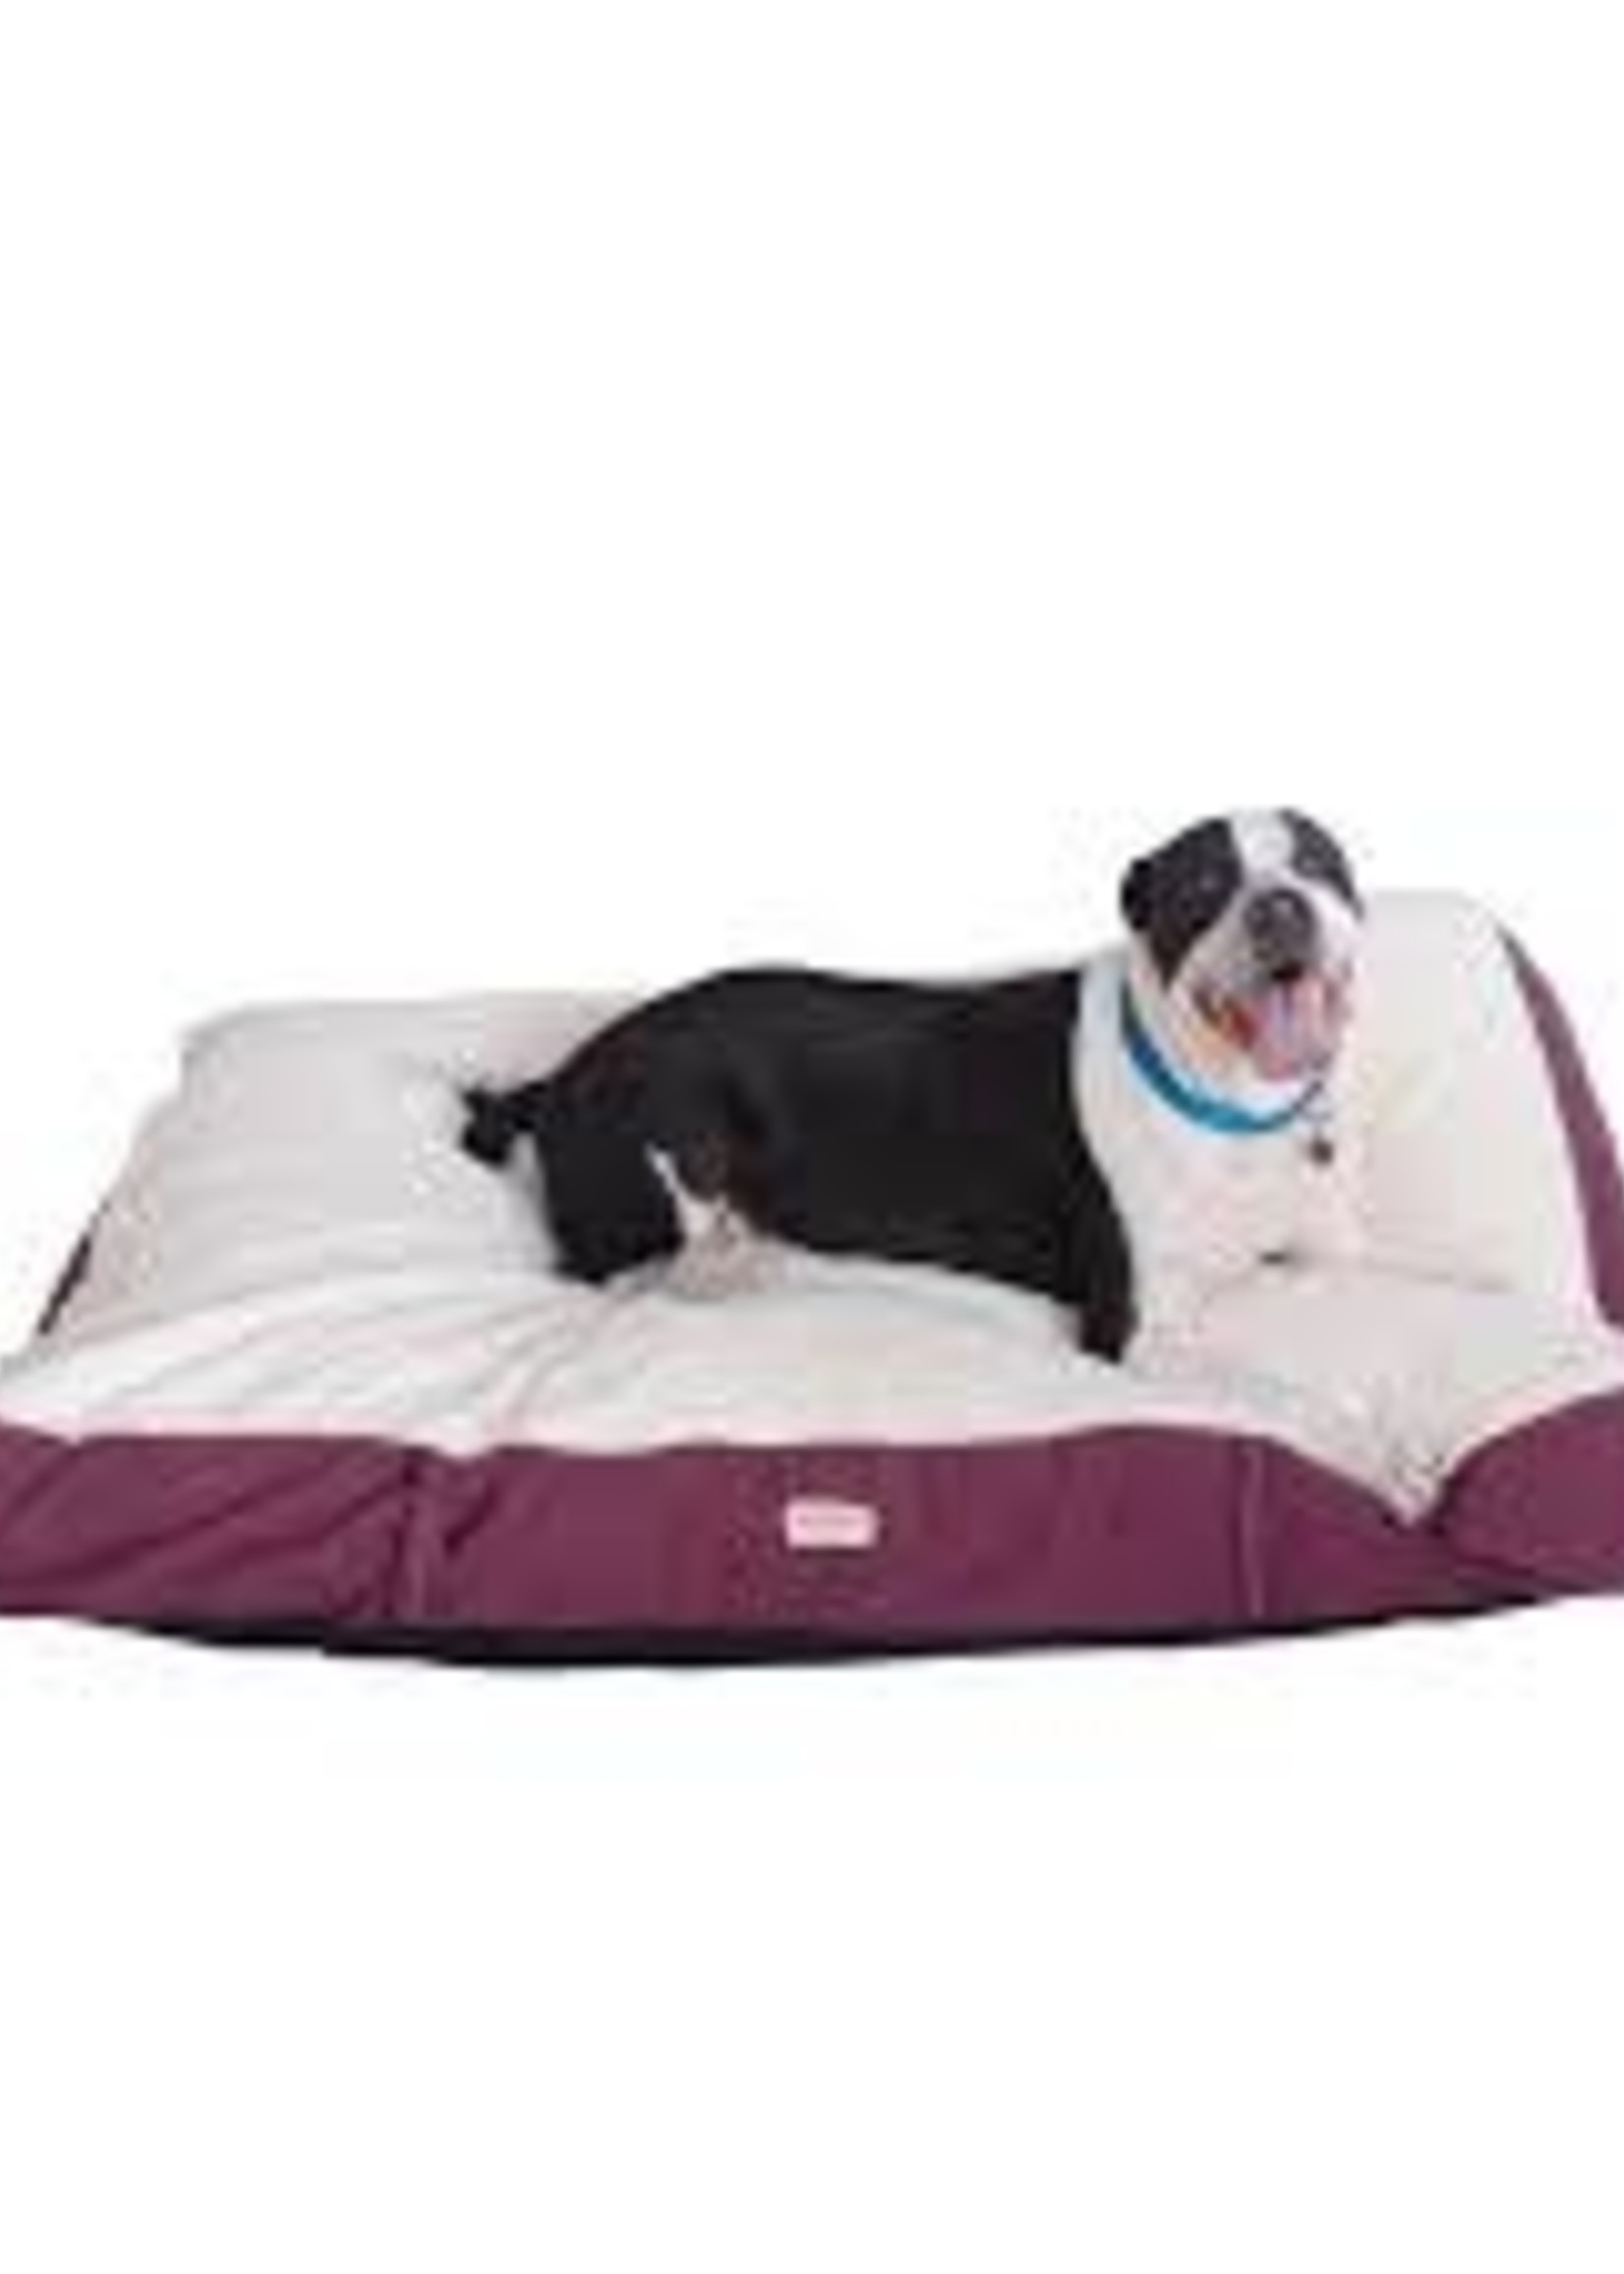 Armarkat Armarkat XXL Pet Bed Mat w/Poly Fill Cushion Removable Cover Ivory & Burgundy